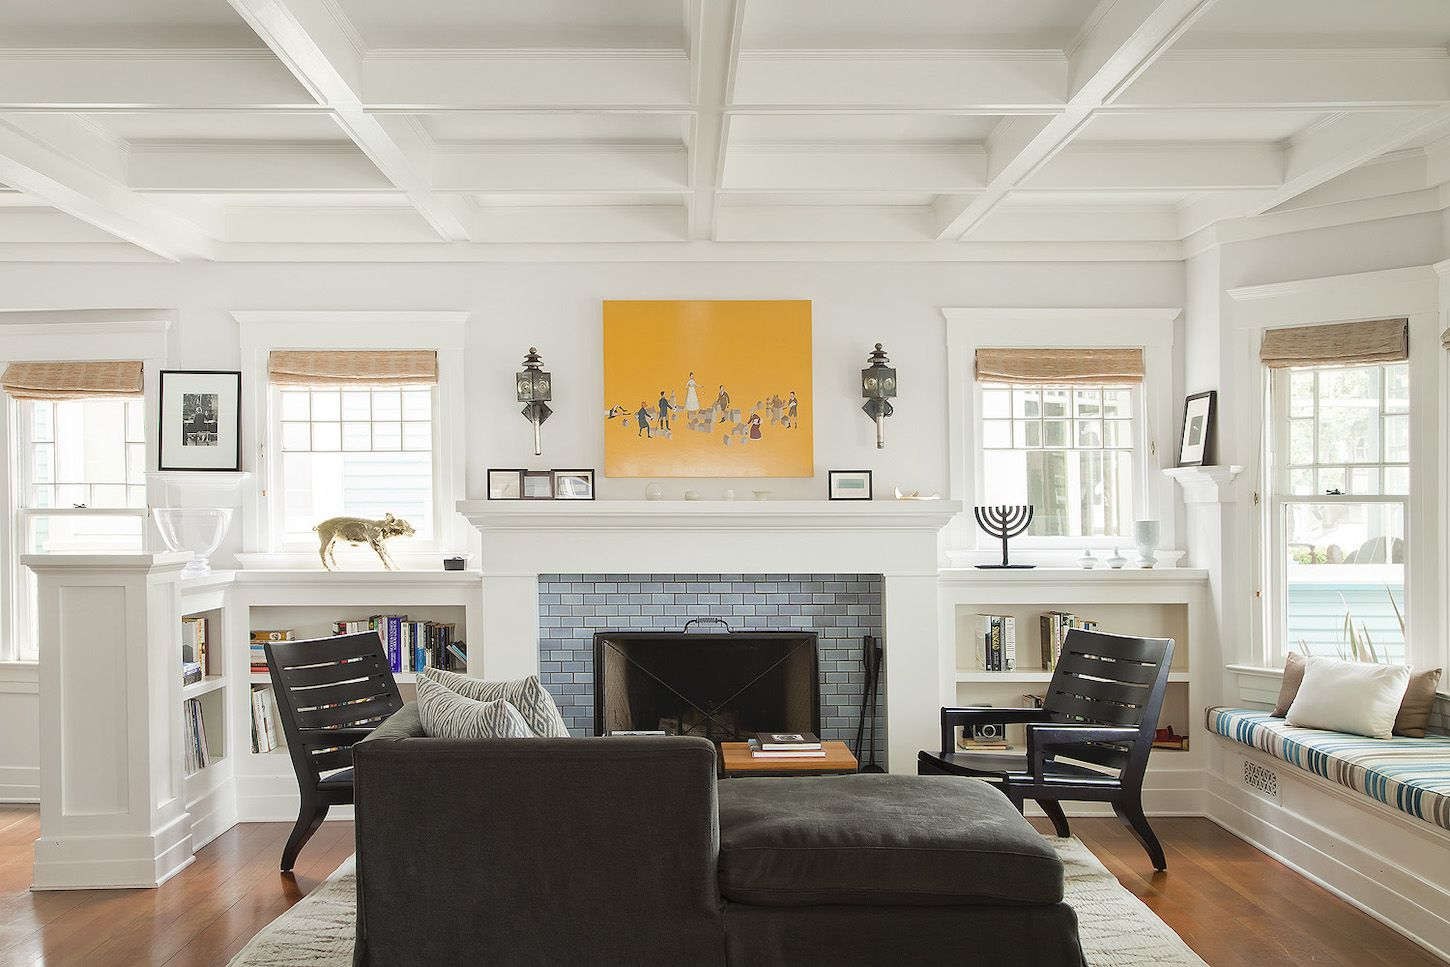 Classic Features Of A Craftsman Style Interior